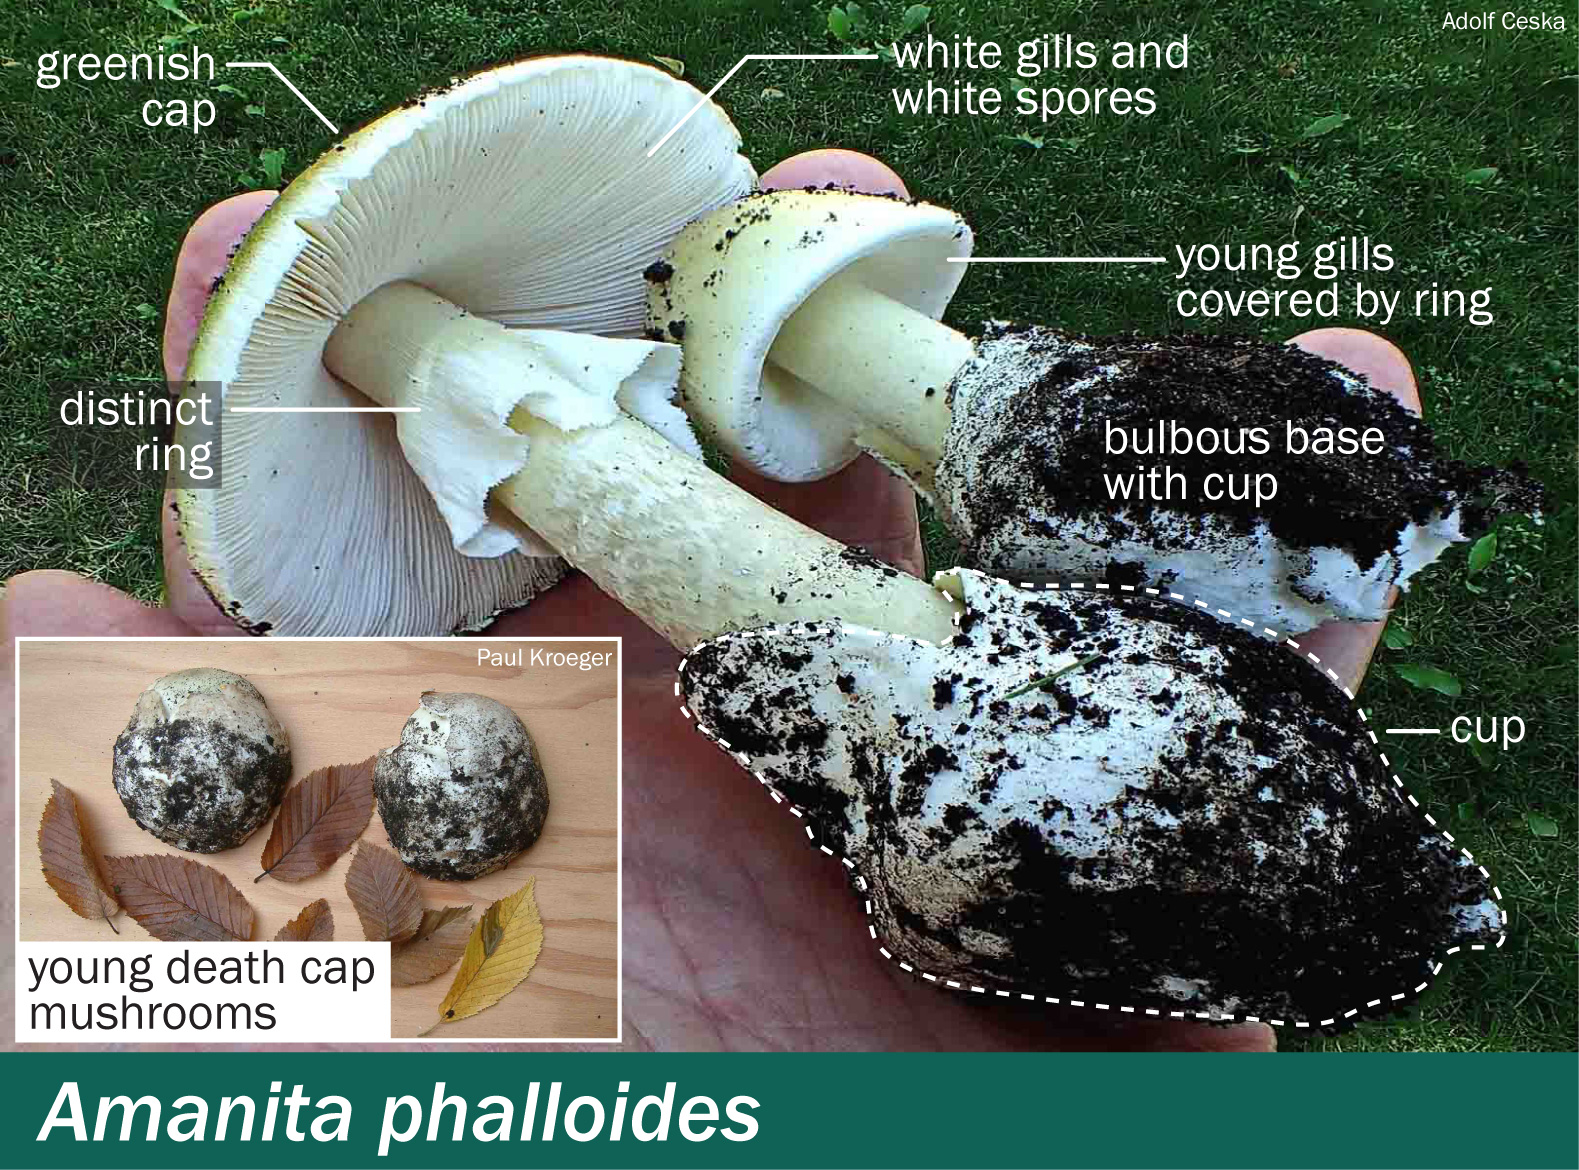 Amanita phalloides – Mushrooms Up! Edible and Poisonous Species of